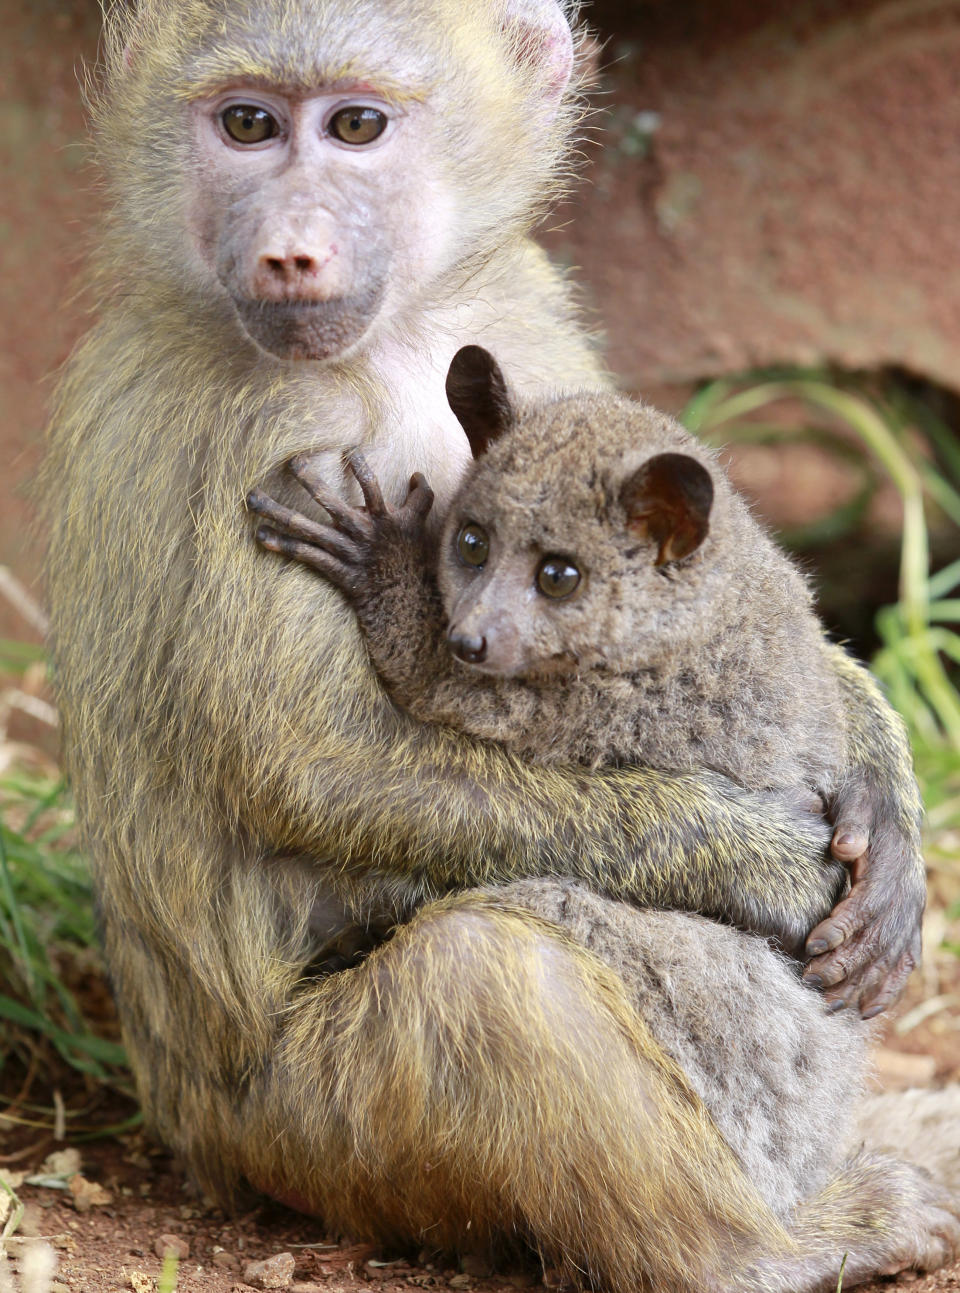 A seven-months-old yellow baboon (Papio cynocephalus) carries a Galagos also known as a bushbaby at the Animal Orphanage in the Kenya Wildlife Service (KWS) headquarters in Nairobi, June 10, 2011. Defying nature, the Yellow Baboon, rescued in Maralal (northern Kenya) has quickly adopted a Galagos, rescued in Nyeri (central Kenya), after meeting at the orphanage giving it affection and protection as if it were her own offspring. Yellow baboons inhabits savannas and light forests in the eastern Africa while Galagos are small, nocturnal primates native to continental Africa. REUTERS/Thomas Mukoya